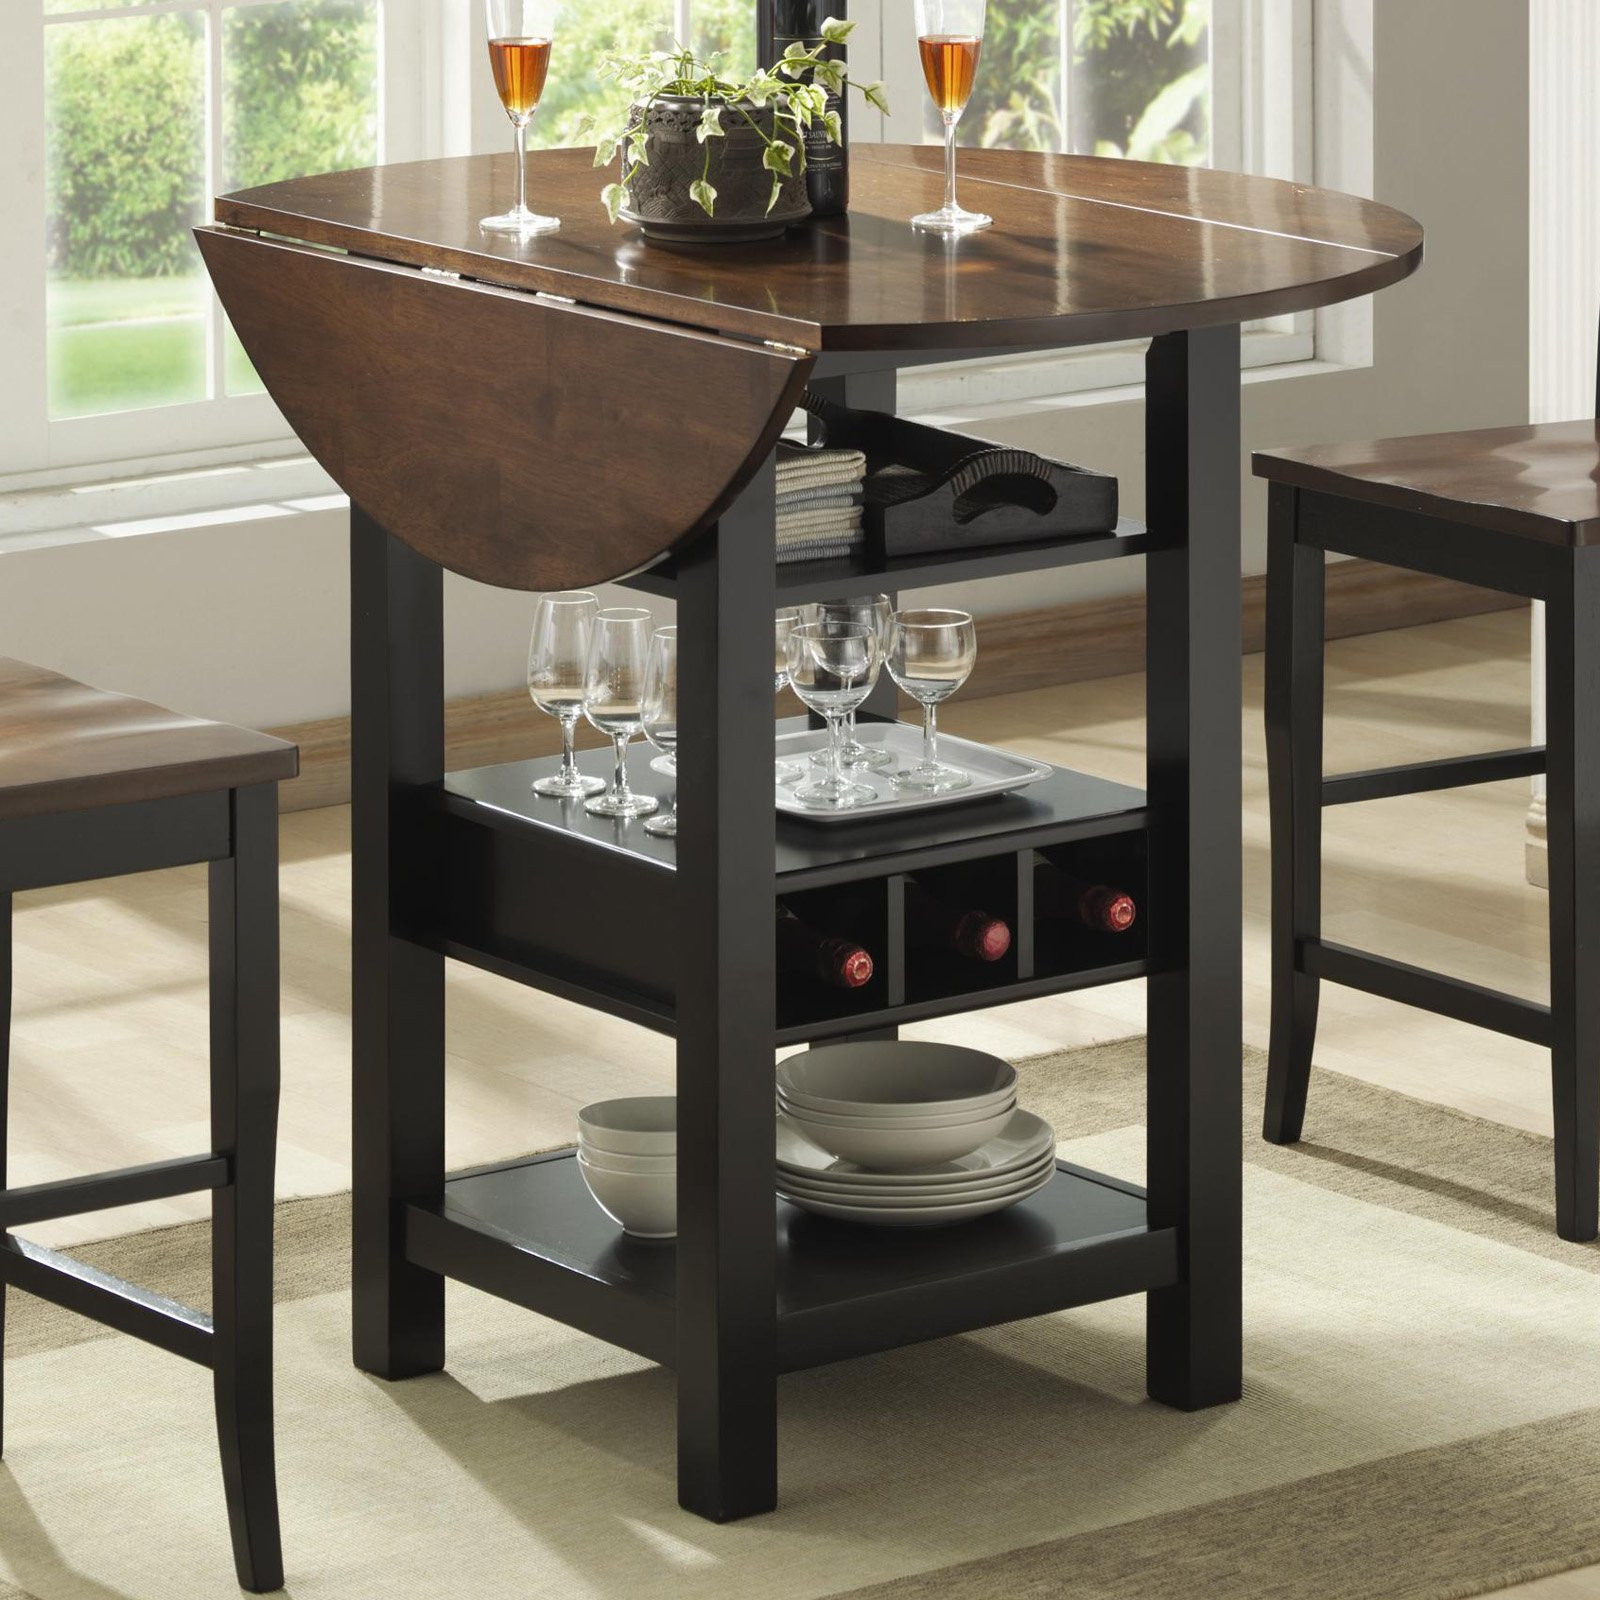 Best ideas about Dining Table With Storage . Save or Pin 47 Kitchen Storage Table Kitchen Table With Storage Now.